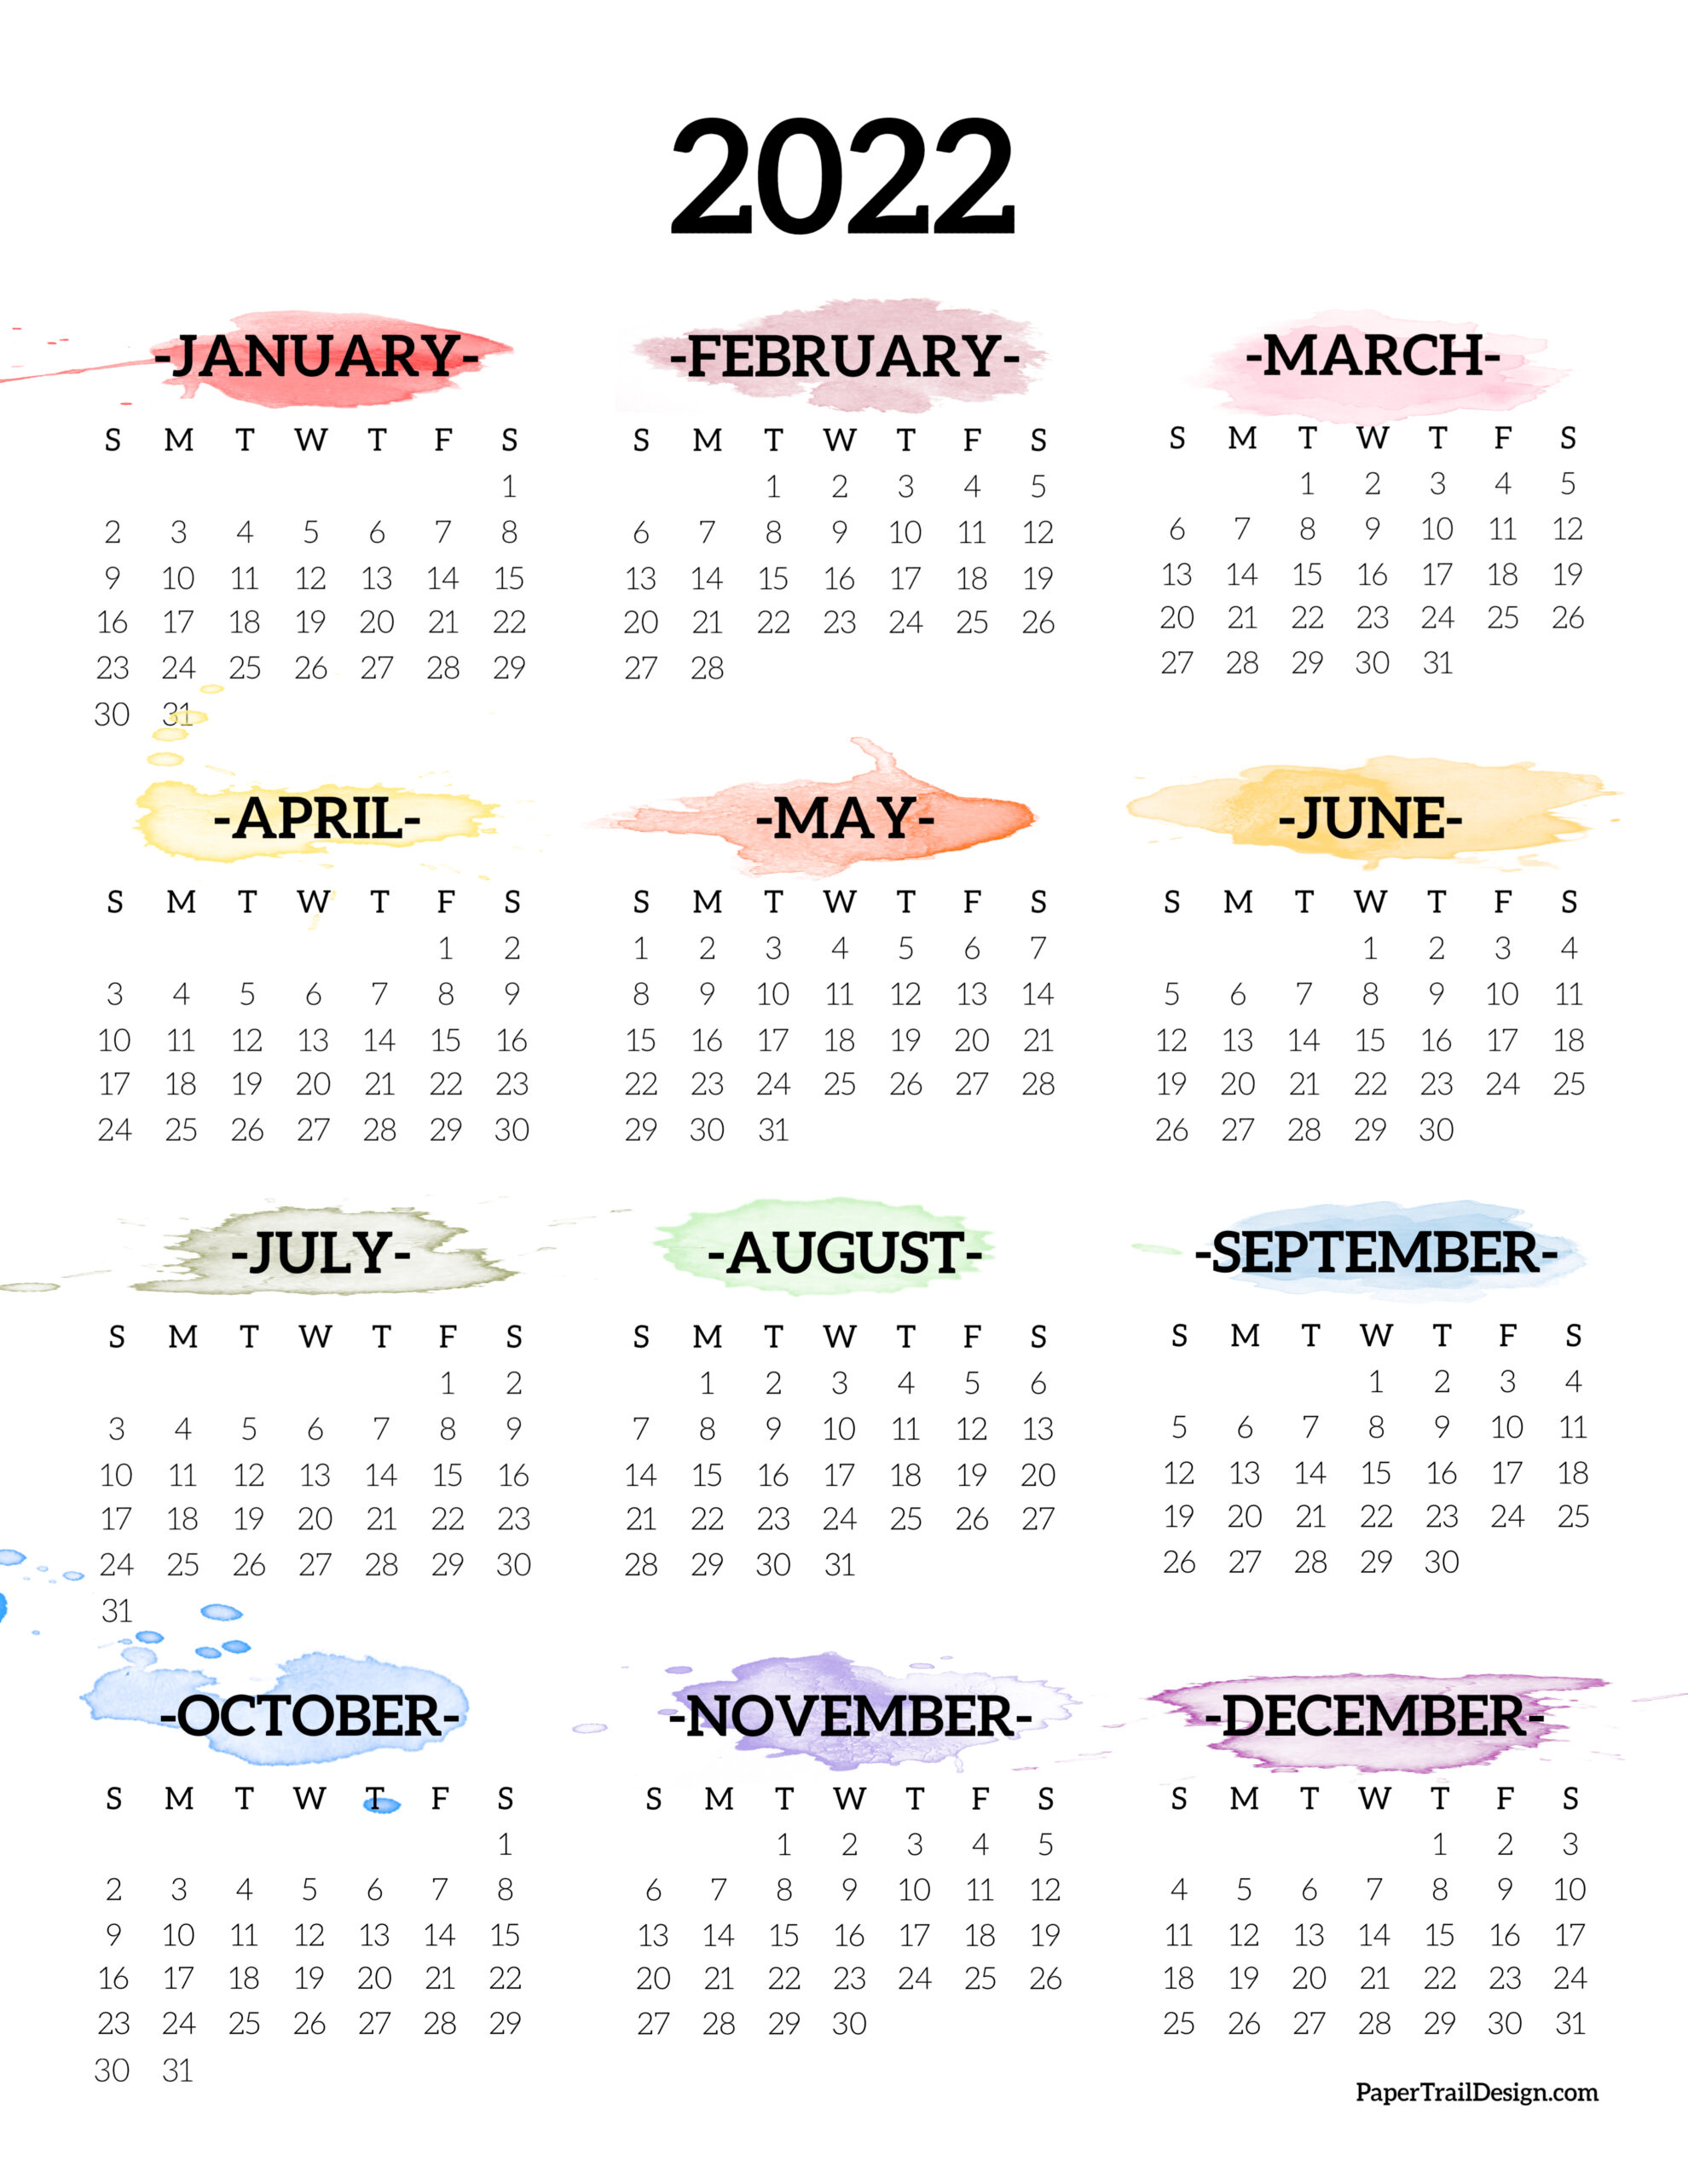 Calendar 2022 Year.2022 One Page Calendar Printable Watercolor Paper Trail Design